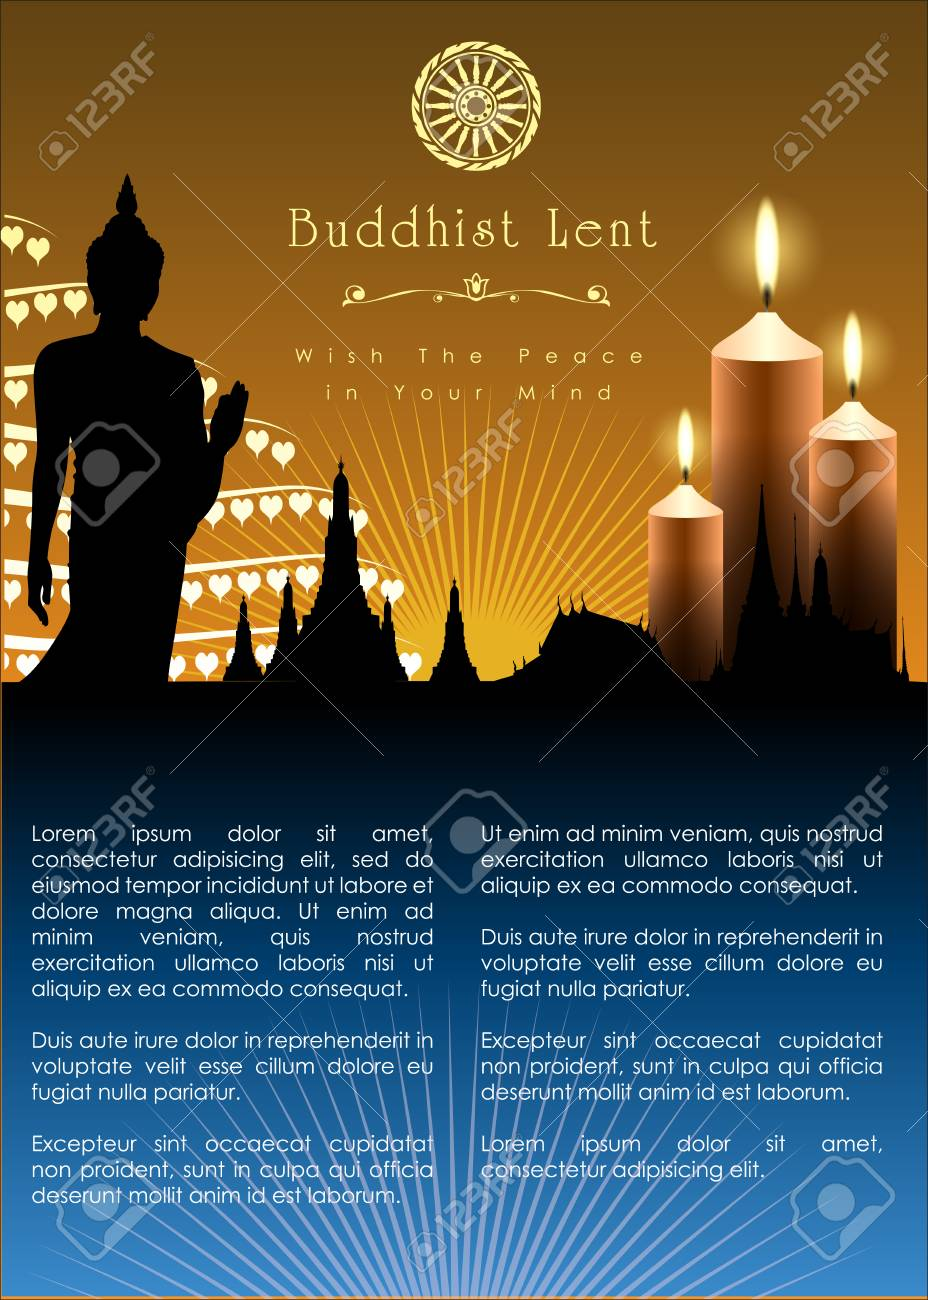 Buddhist Lent Artwork Template Vector And Illustration Royalty 928x1300